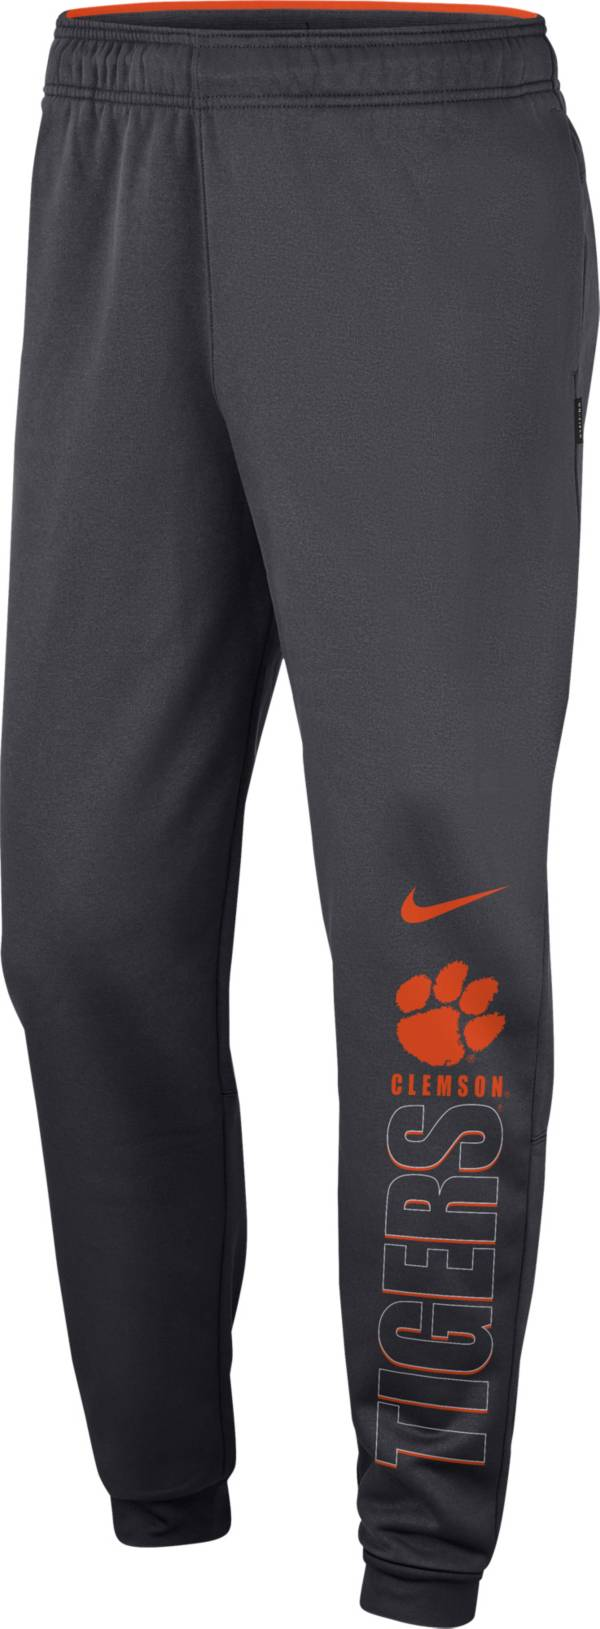 Nike Men's Clemson Tigers Grey Therma Tapered Pants product image